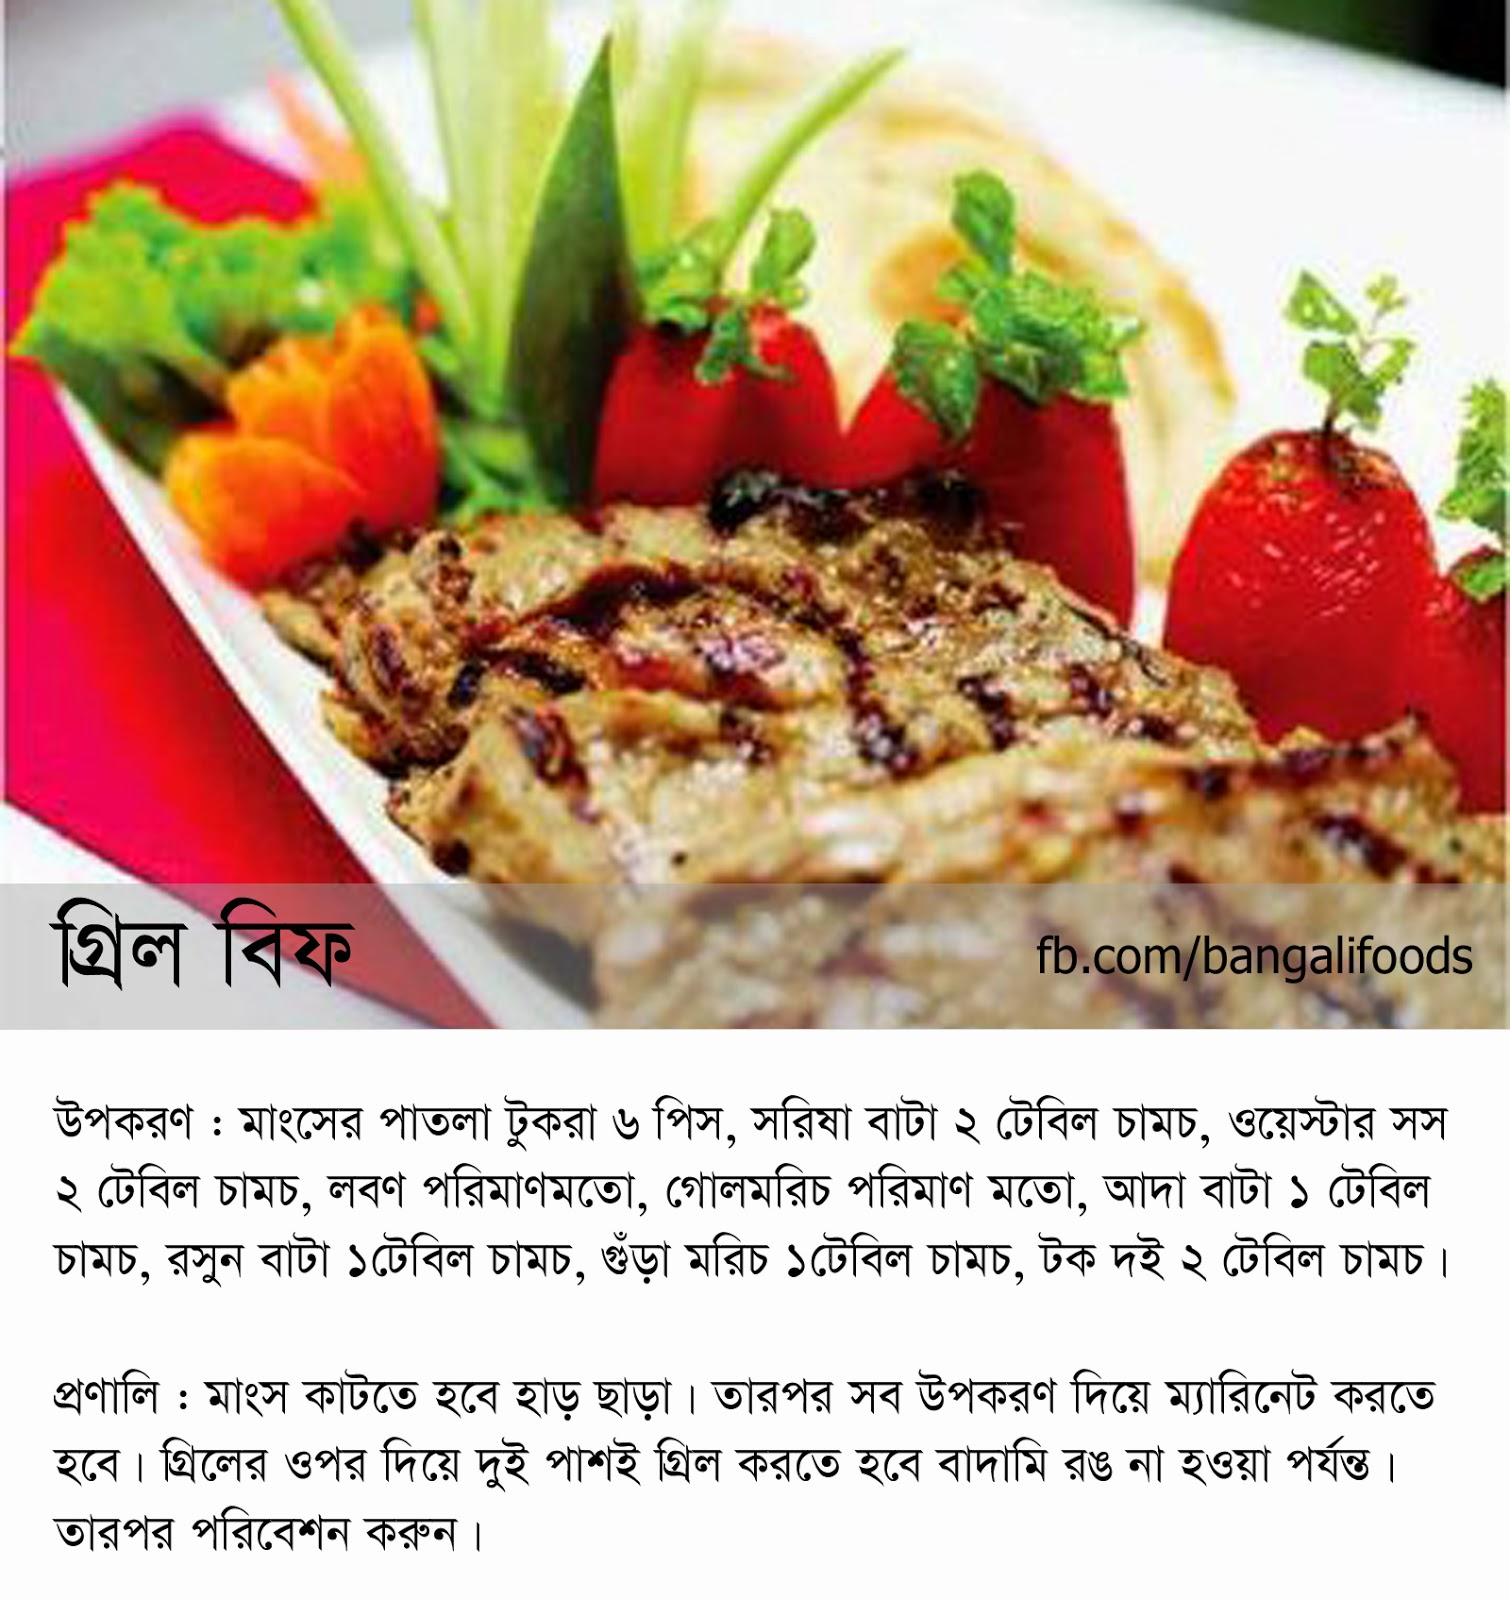 Bangali foods beef recipe for the eid ul adha 2013 grill beef recipe in bangla font forumfinder Image collections